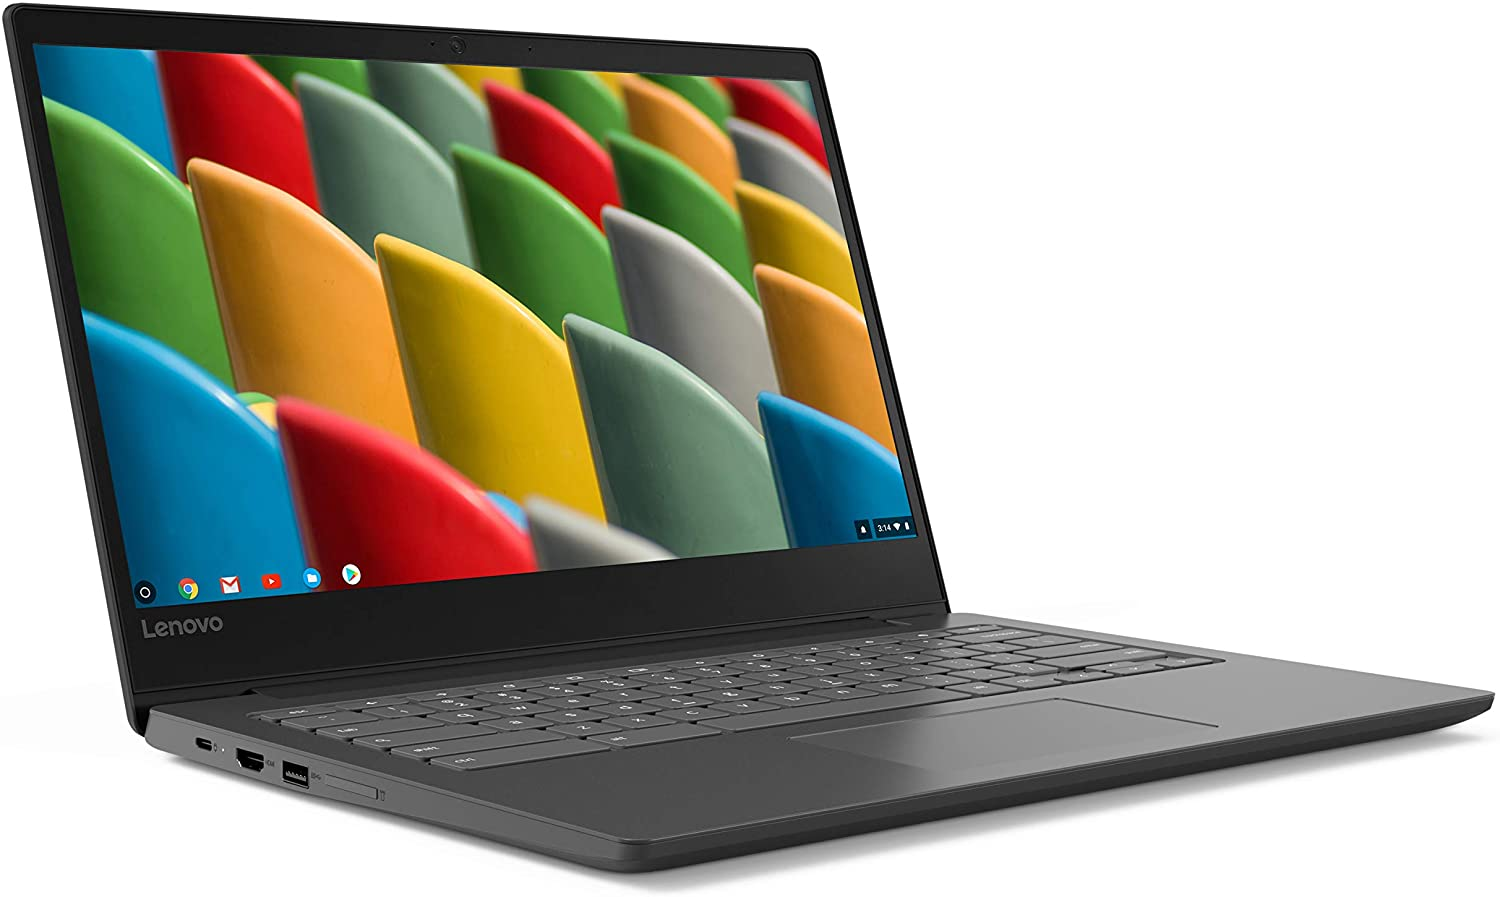 "Lenovo Chromebook 14"" HD Display Business Laptop, MediaTek MT8173C Quad Core Processor up to 2.1GHz, 4GB LPDDR3, 32GB eMMC, Webcam, Blutetooth, HDMI, Chrome OS, Up to 10-hr Battery Life, Black"